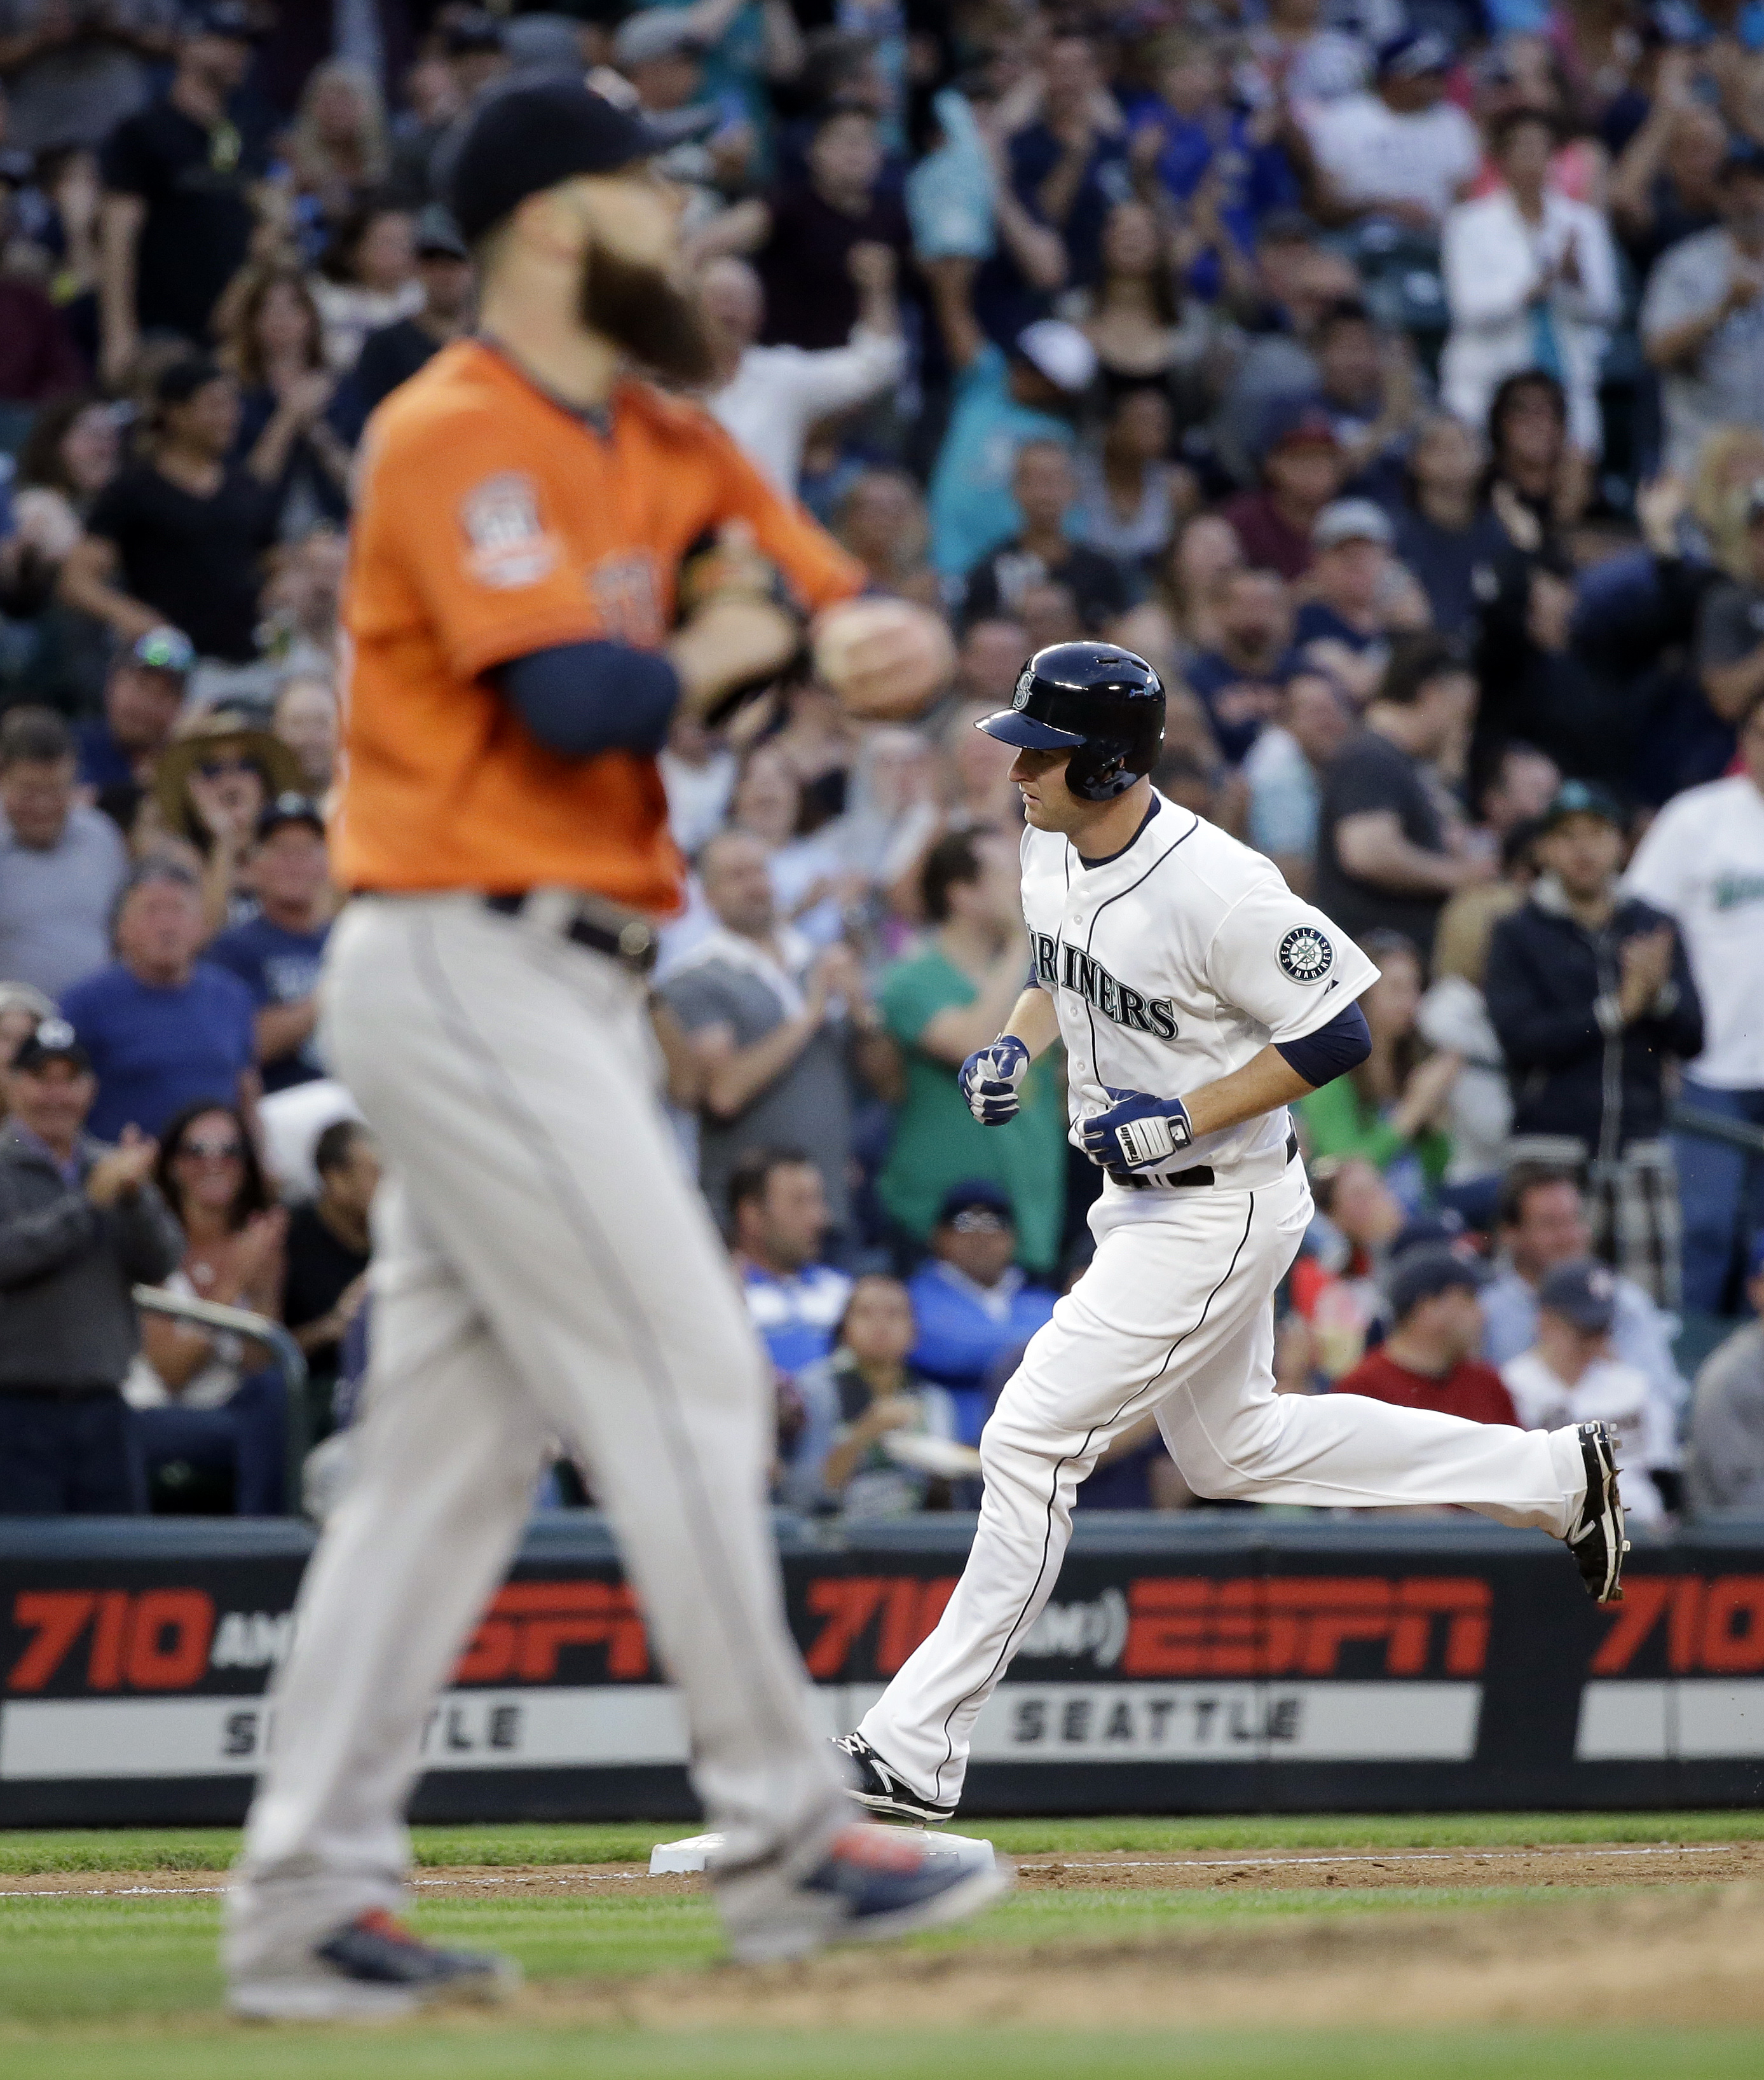 Houston Astros starting pitcher Dallas Keuchel, left, turns away as Seattle Mariners' Mark Trumbo rounds the bases on a home run during the sixth inning of a baseball game Saturday, June 20, 2015, in Seattle. (AP Photo/Elaine Thompson)